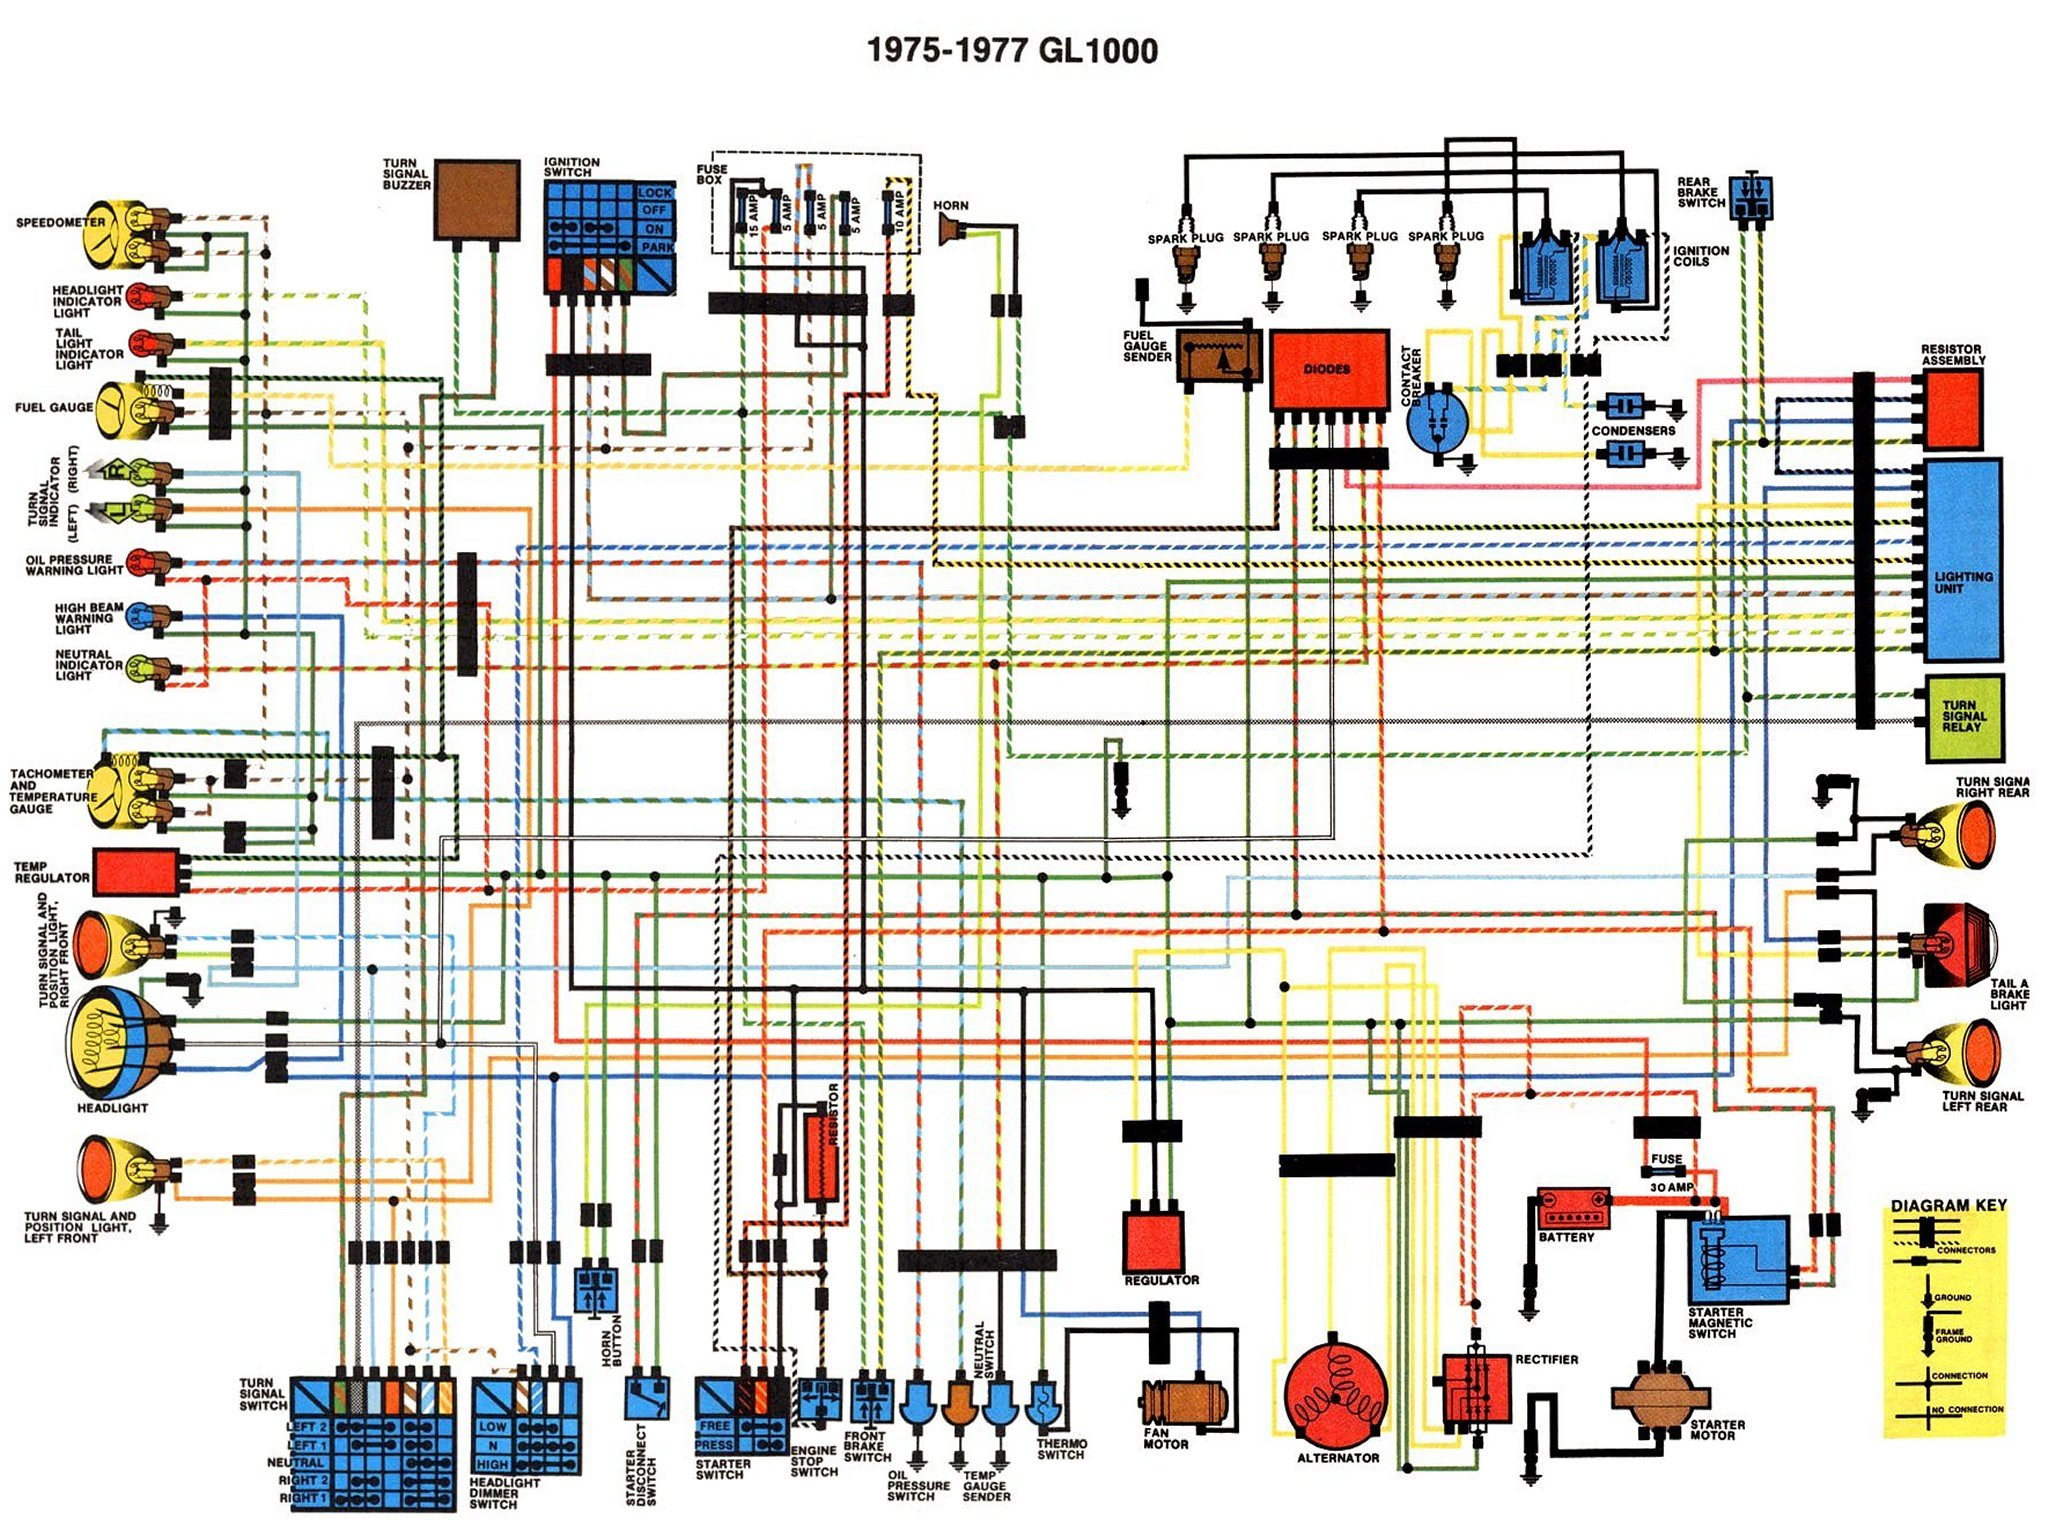 1977 Chevrolet Vega Wiring Diagram Trusted Diagrams 1973 75 Chevy Caprice Schematic